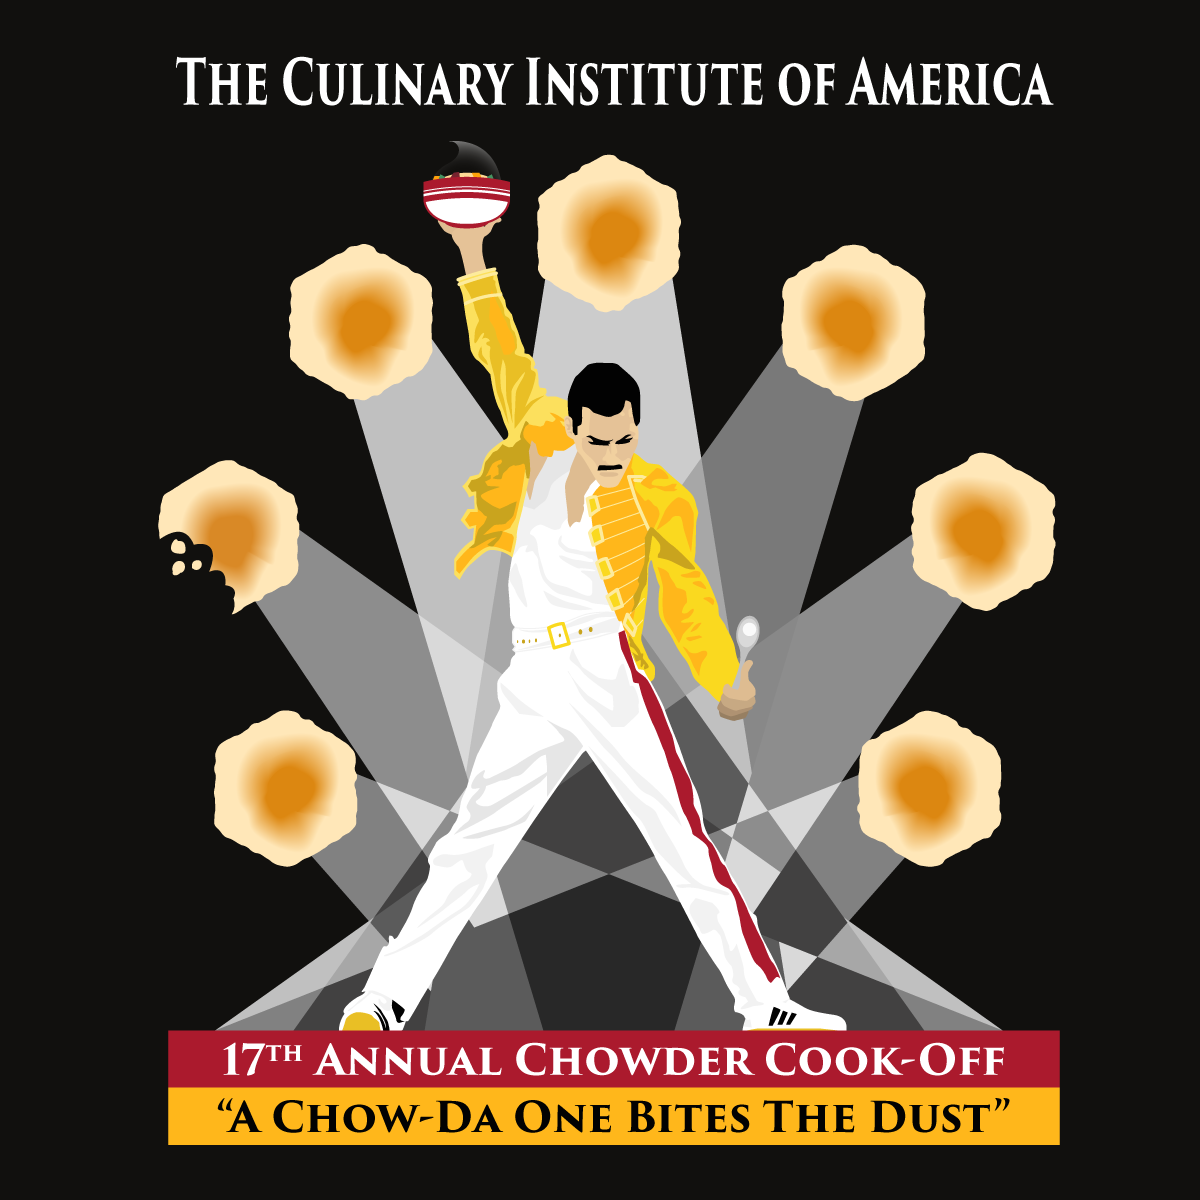 Chowda Cook-Off | The Culinary Institute of America